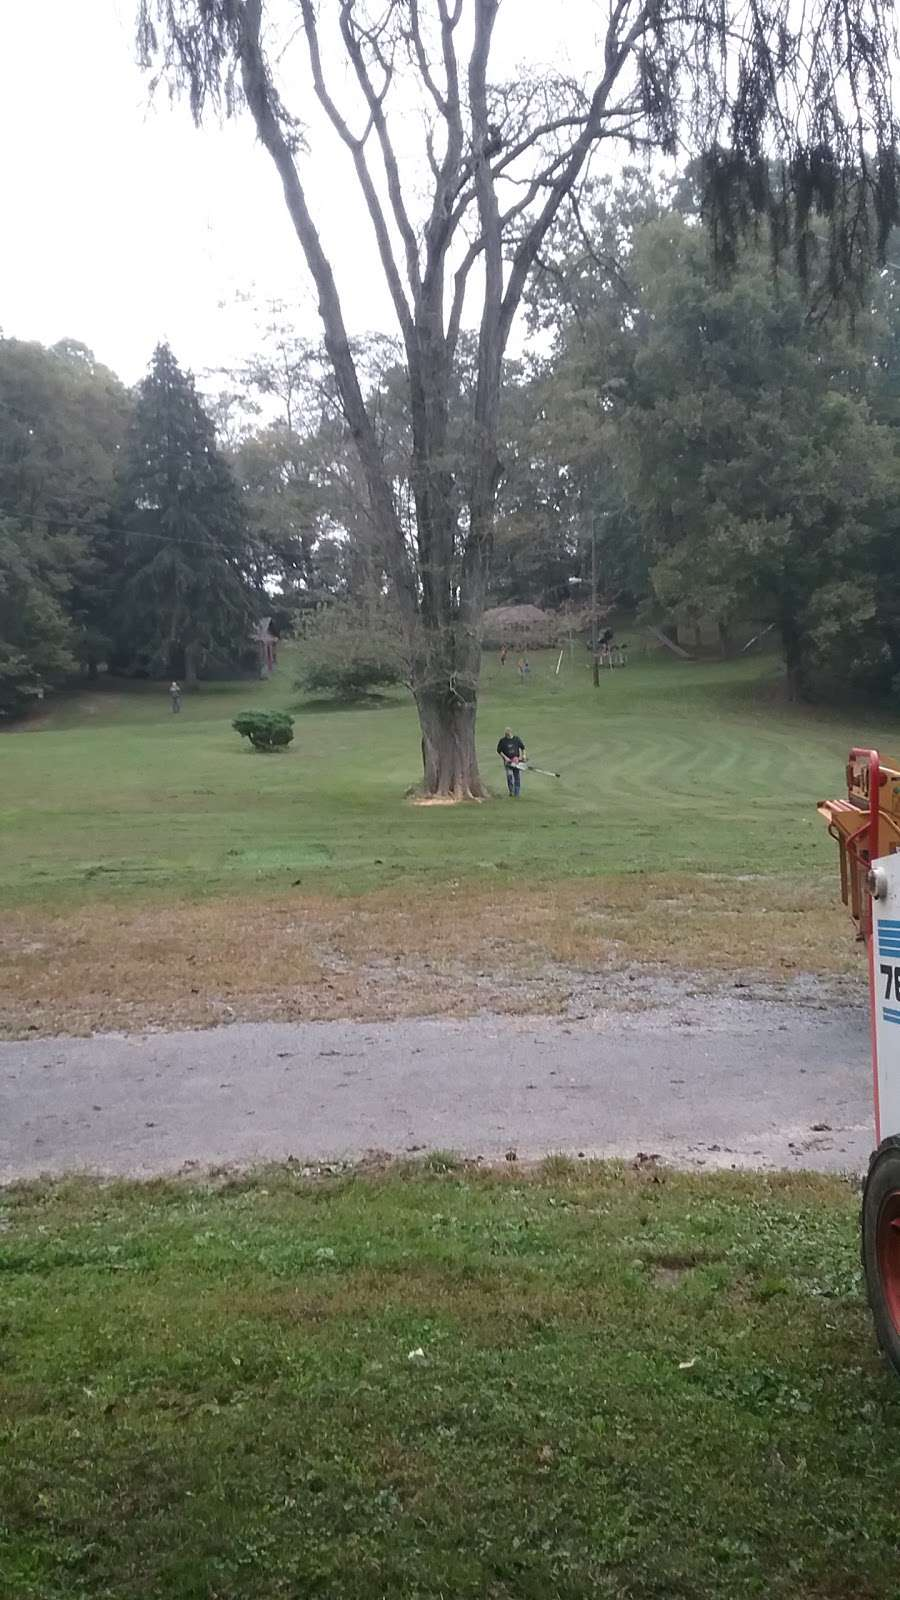 Promised Land Campground - campground    Photo 7 of 10   Address: 301 Boyscout Rd, Conestoga, PA 17516, USA   Phone: (717) 725-0169